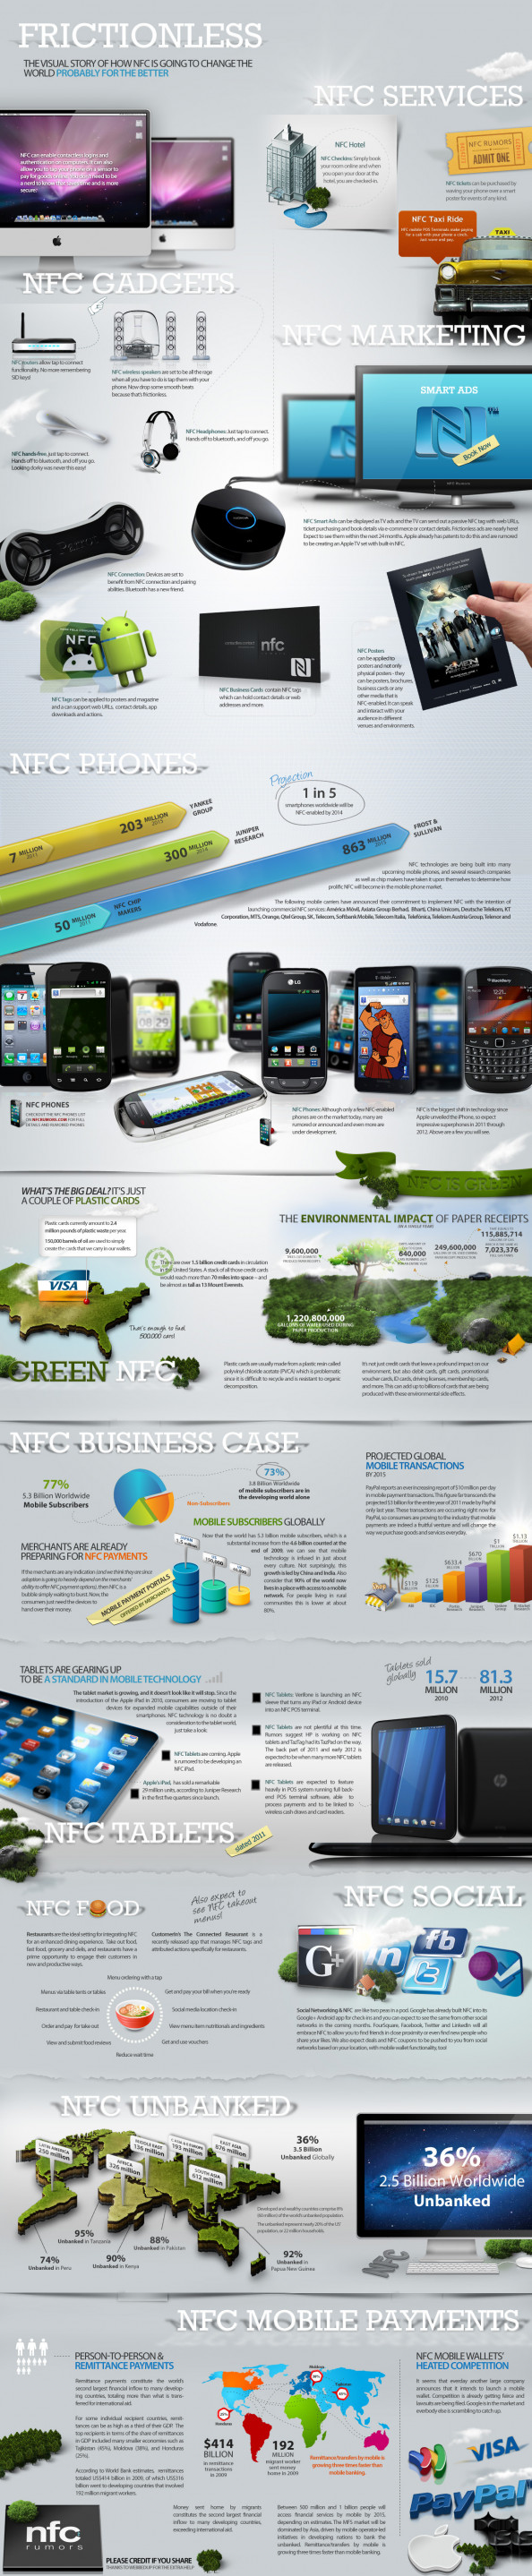 How NFC is Going to Change the World  Infographic